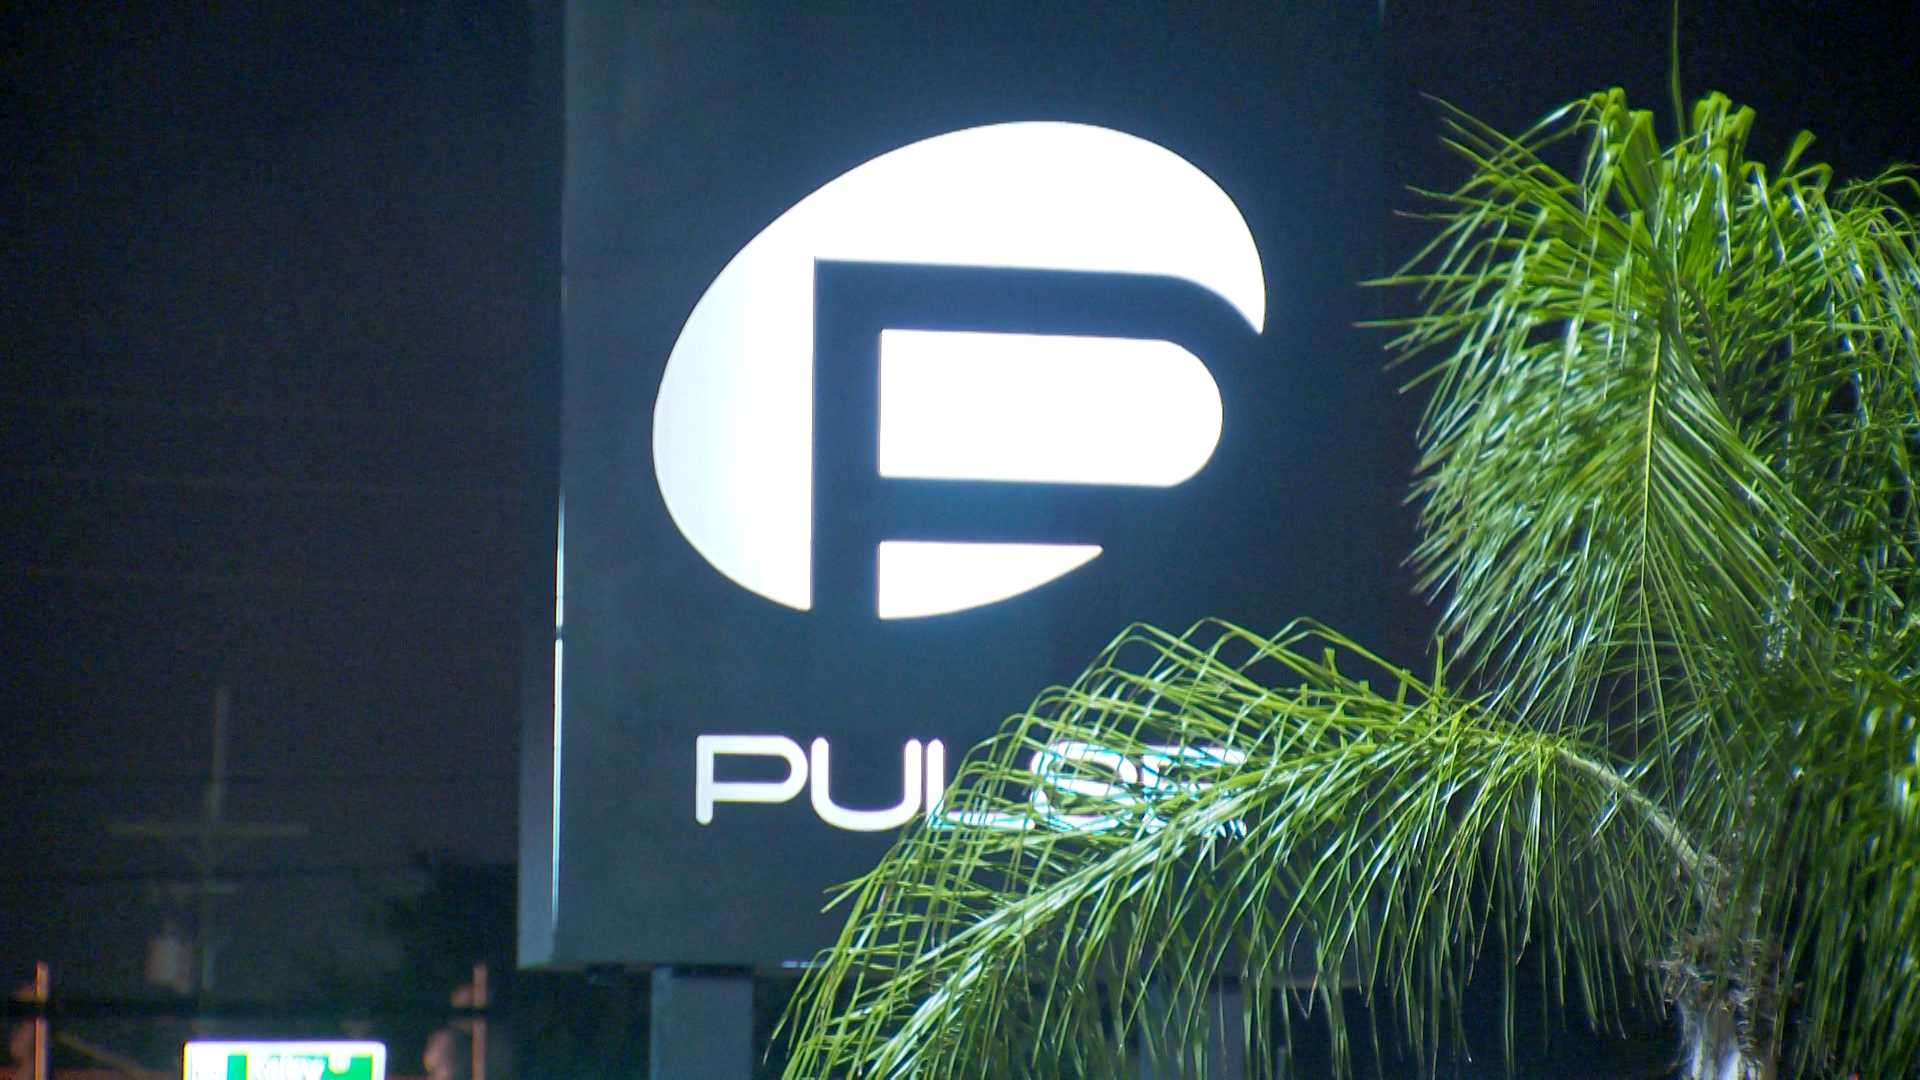 DOJ Grants Florida $8.5 Million for Pulse Victims